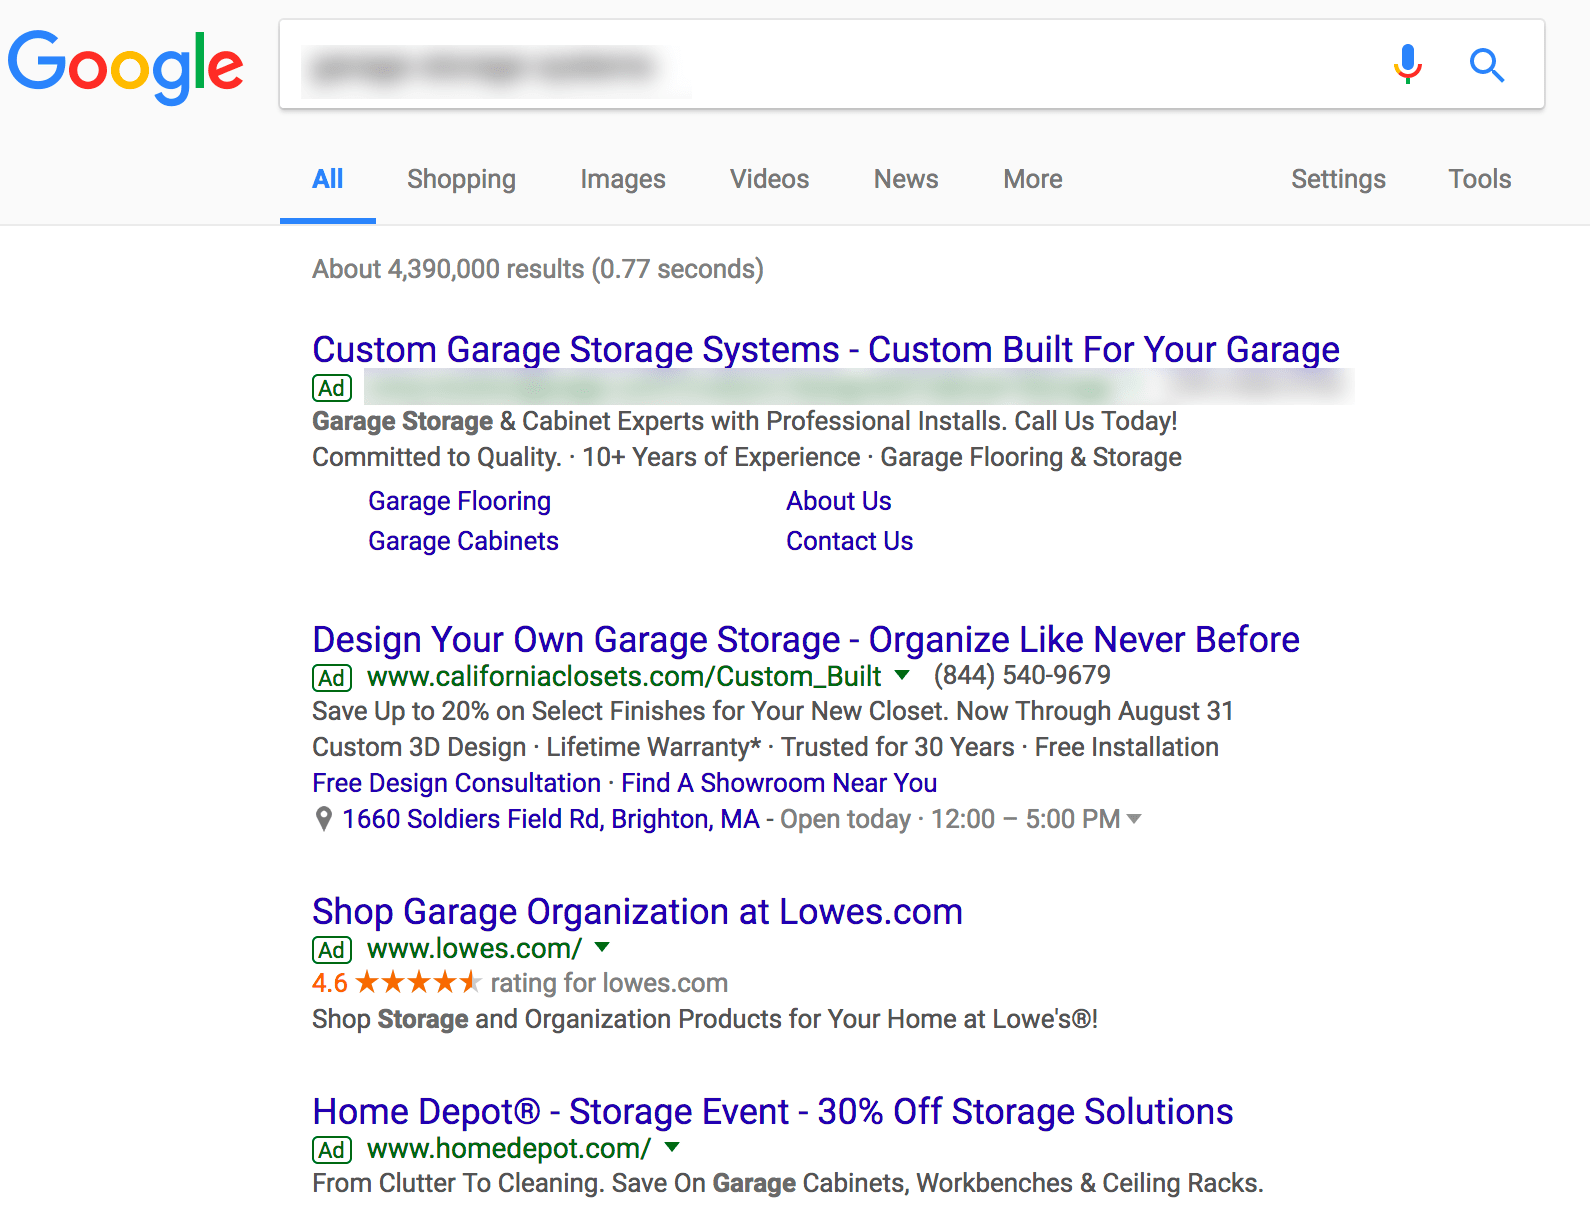 Competing Against Big-Brand Advertisers in PPC